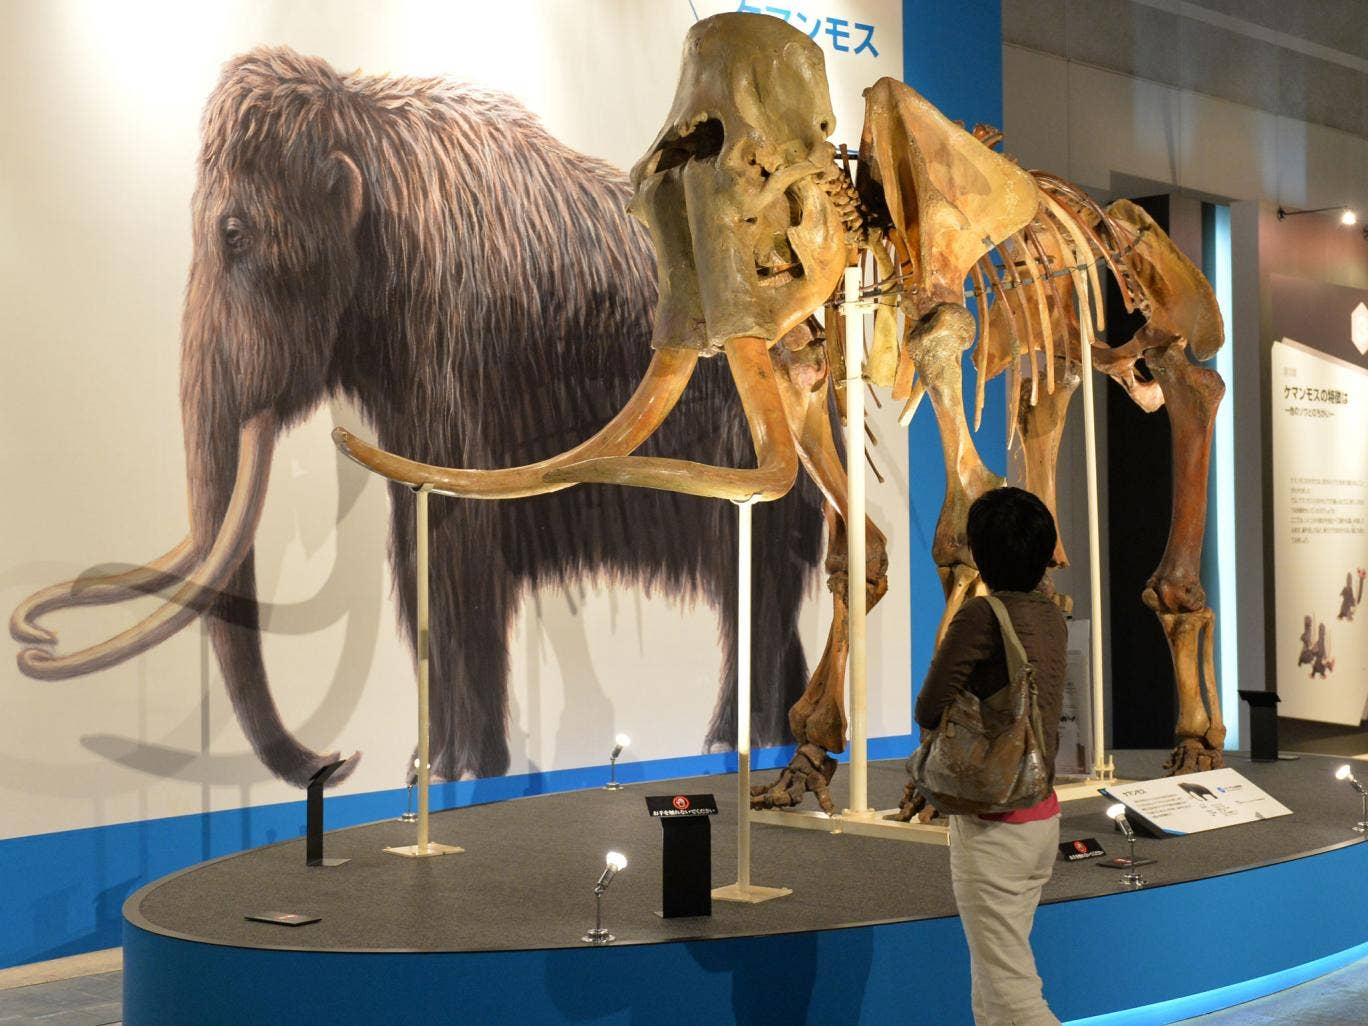 Woolly Mammoths became extinct thousands of years ago - but could they be brought back to life?